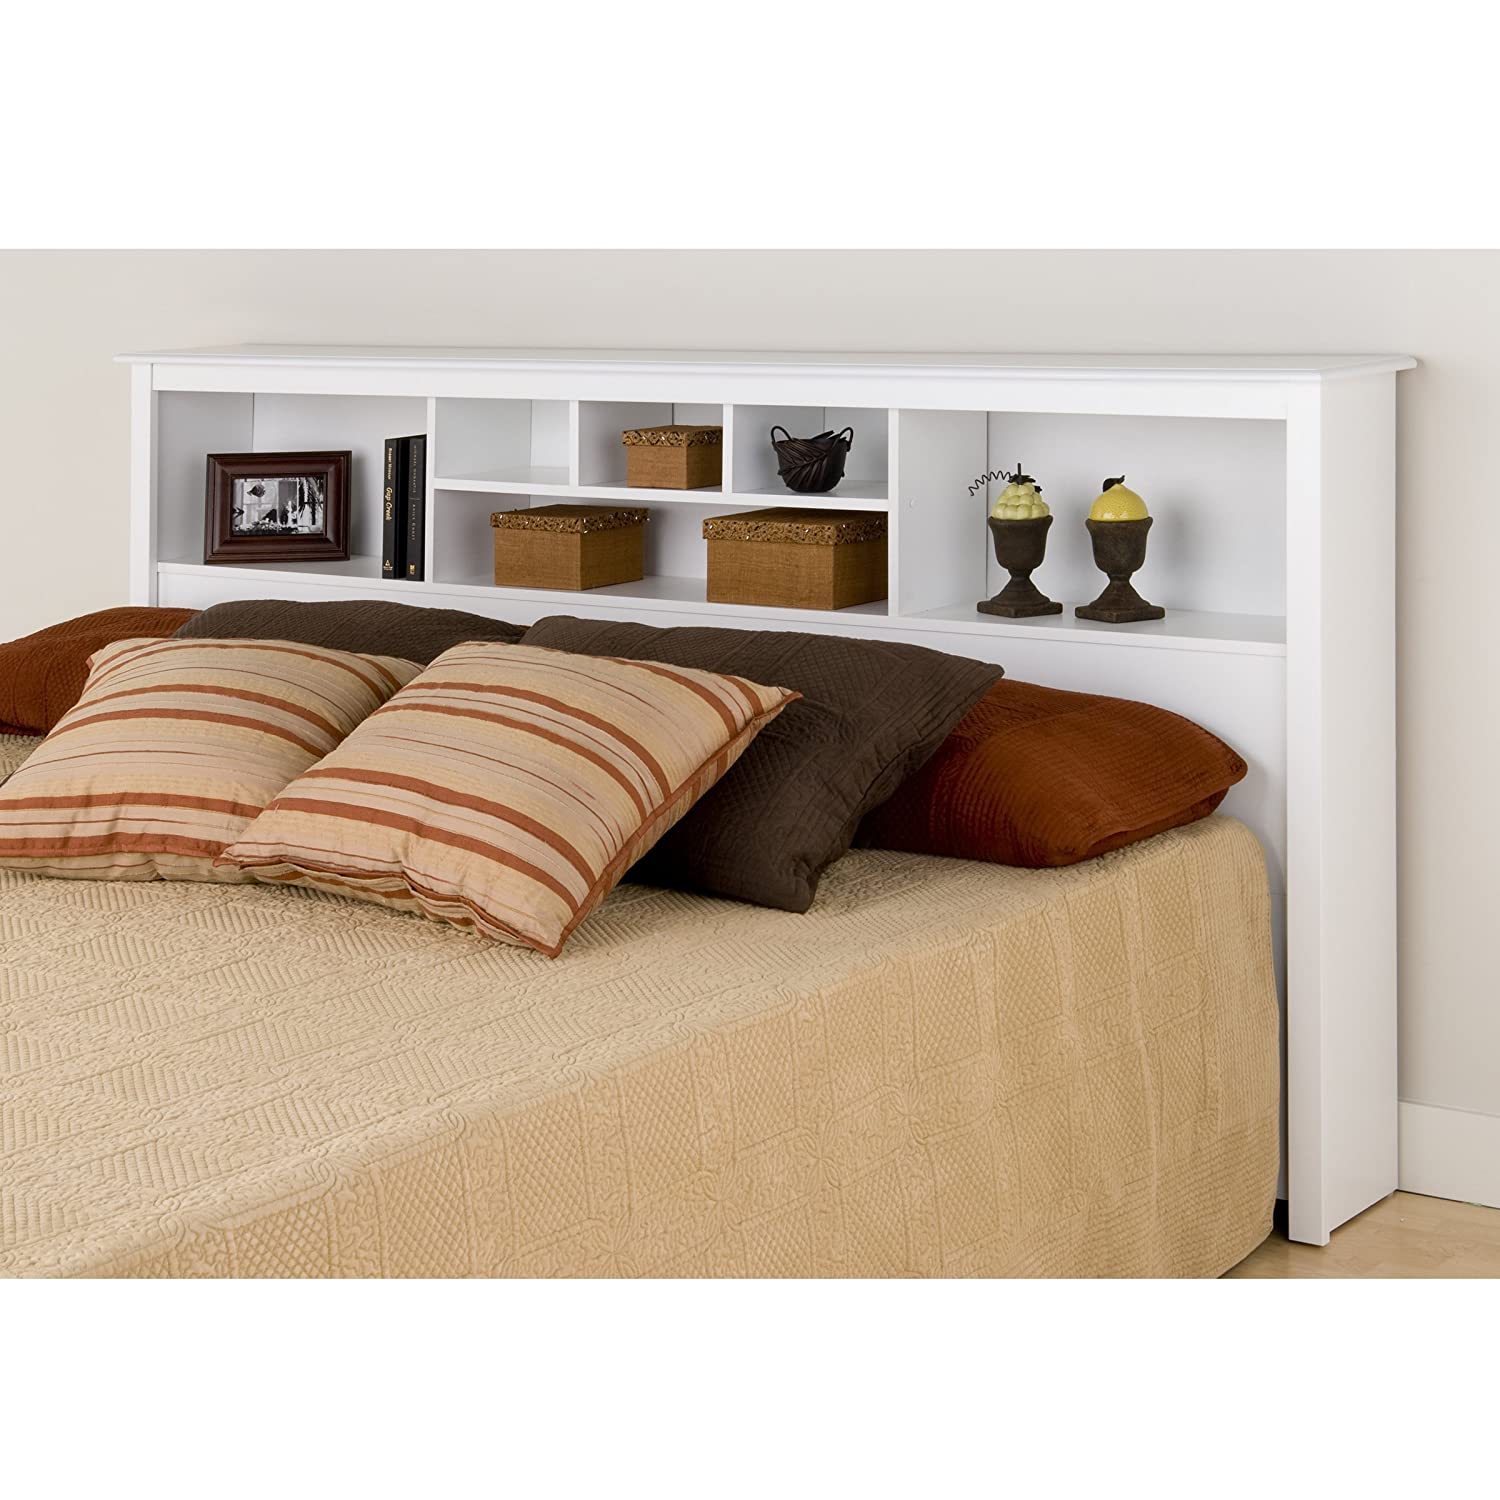 Amazon.com - Prepac Monterey White King Storage Headboard - California King  Headboard